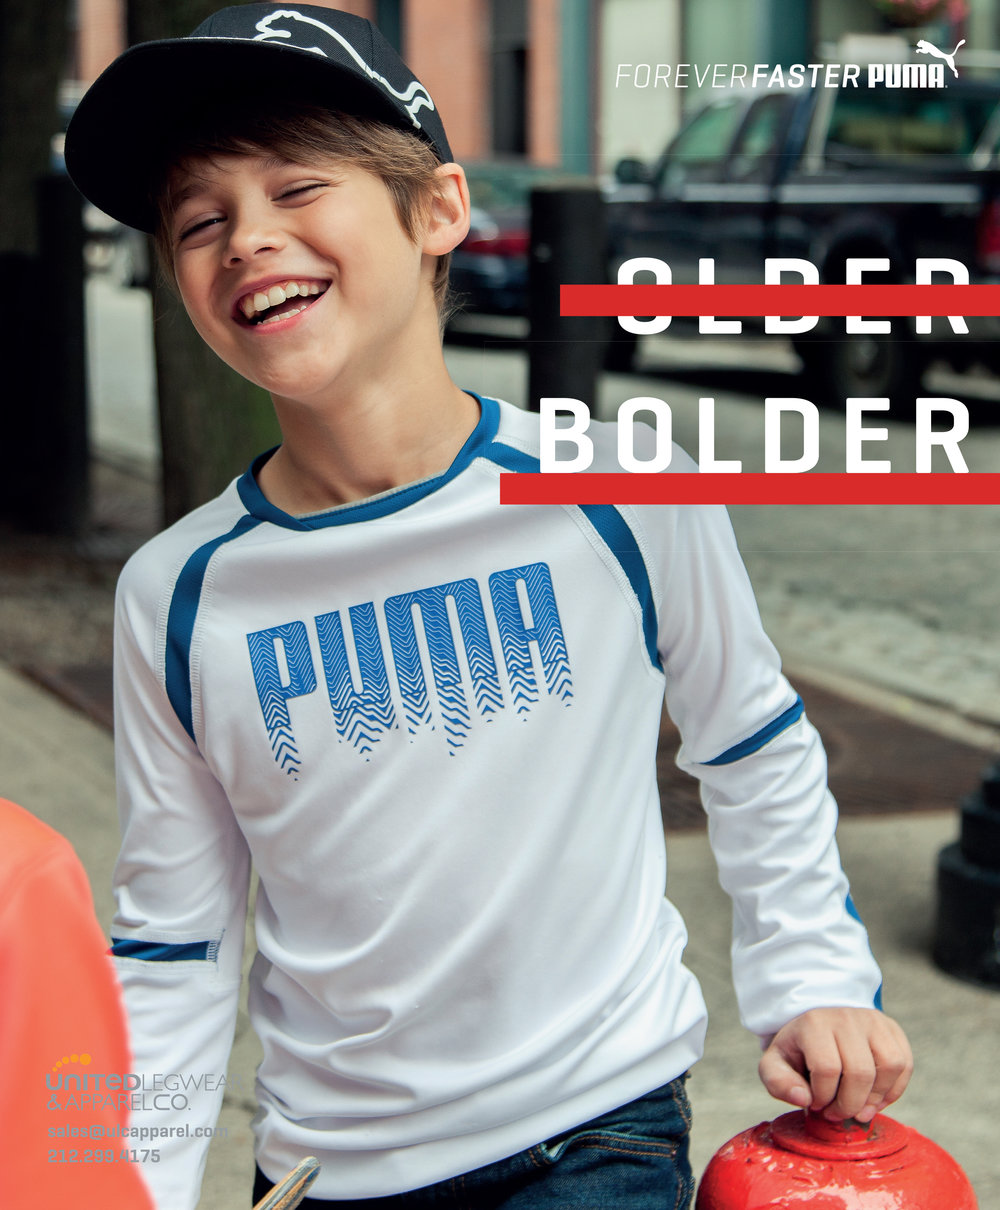 AW15Kids_PUMA_Earnshaws.jpg